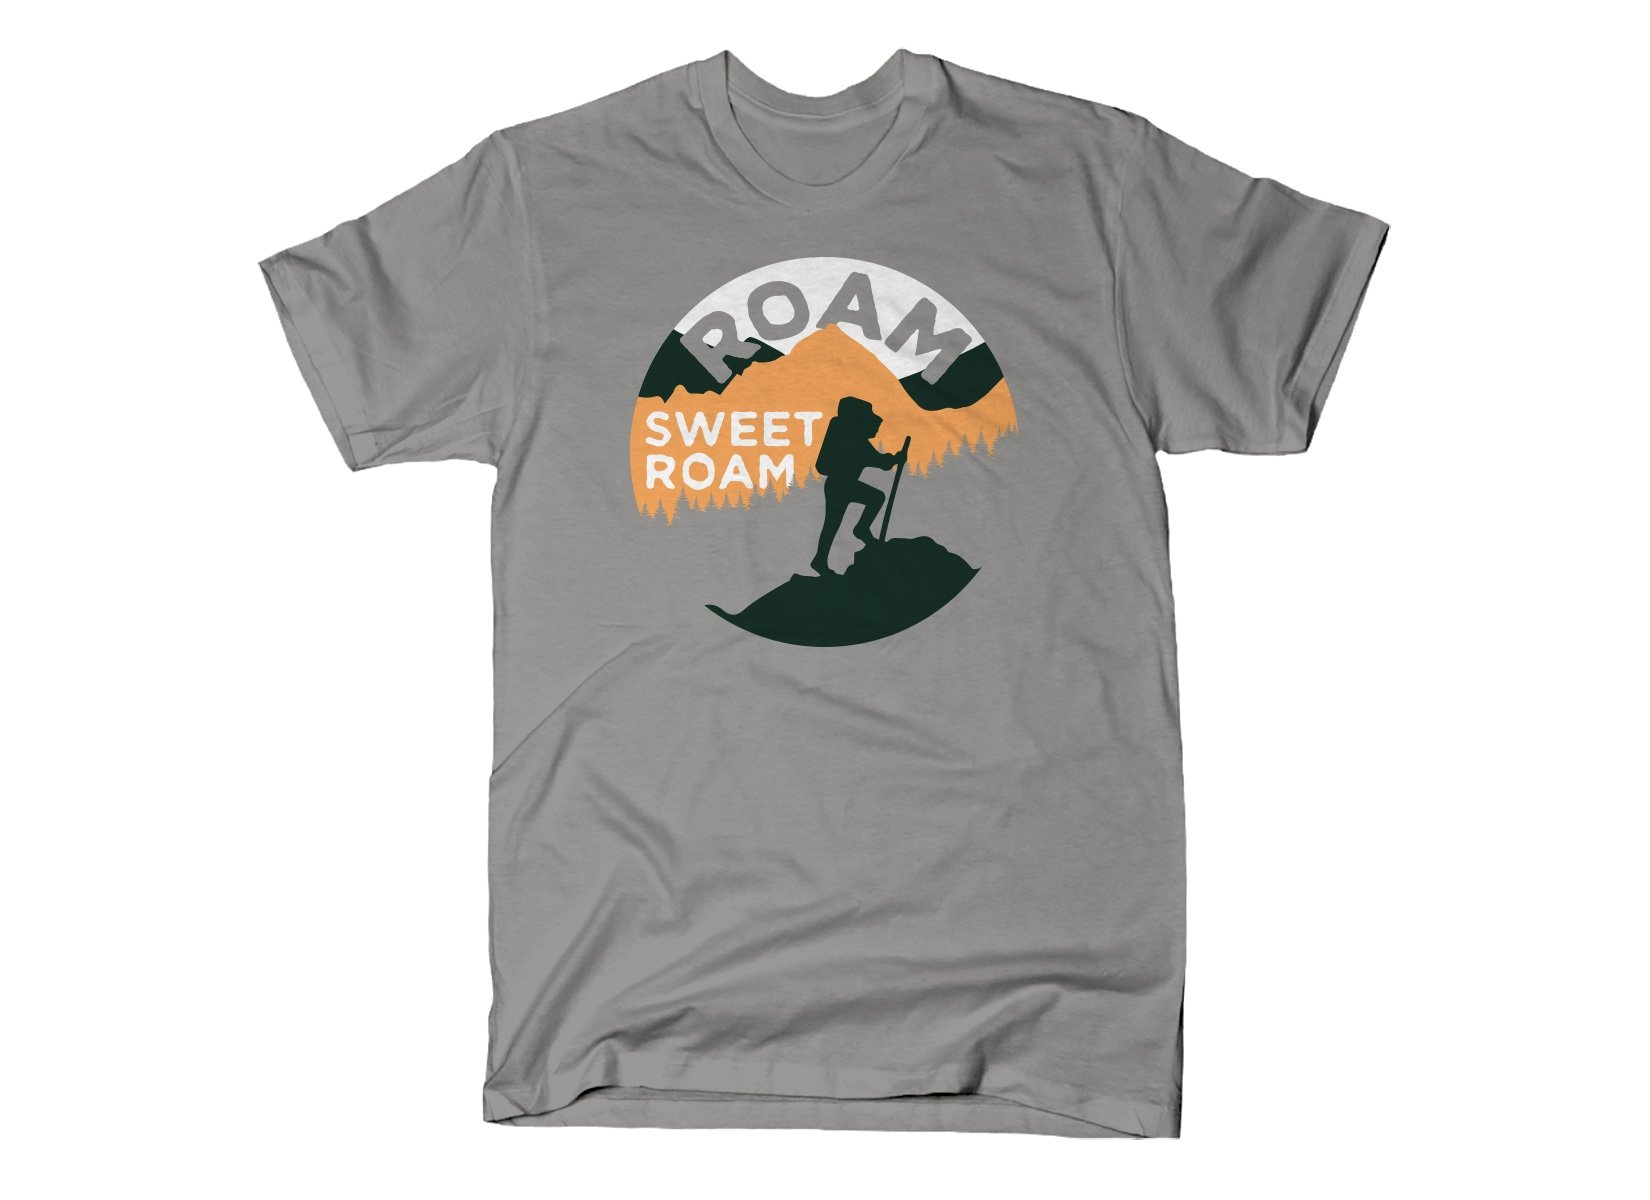 Roam Sweet Roam on Mens T-Shirt